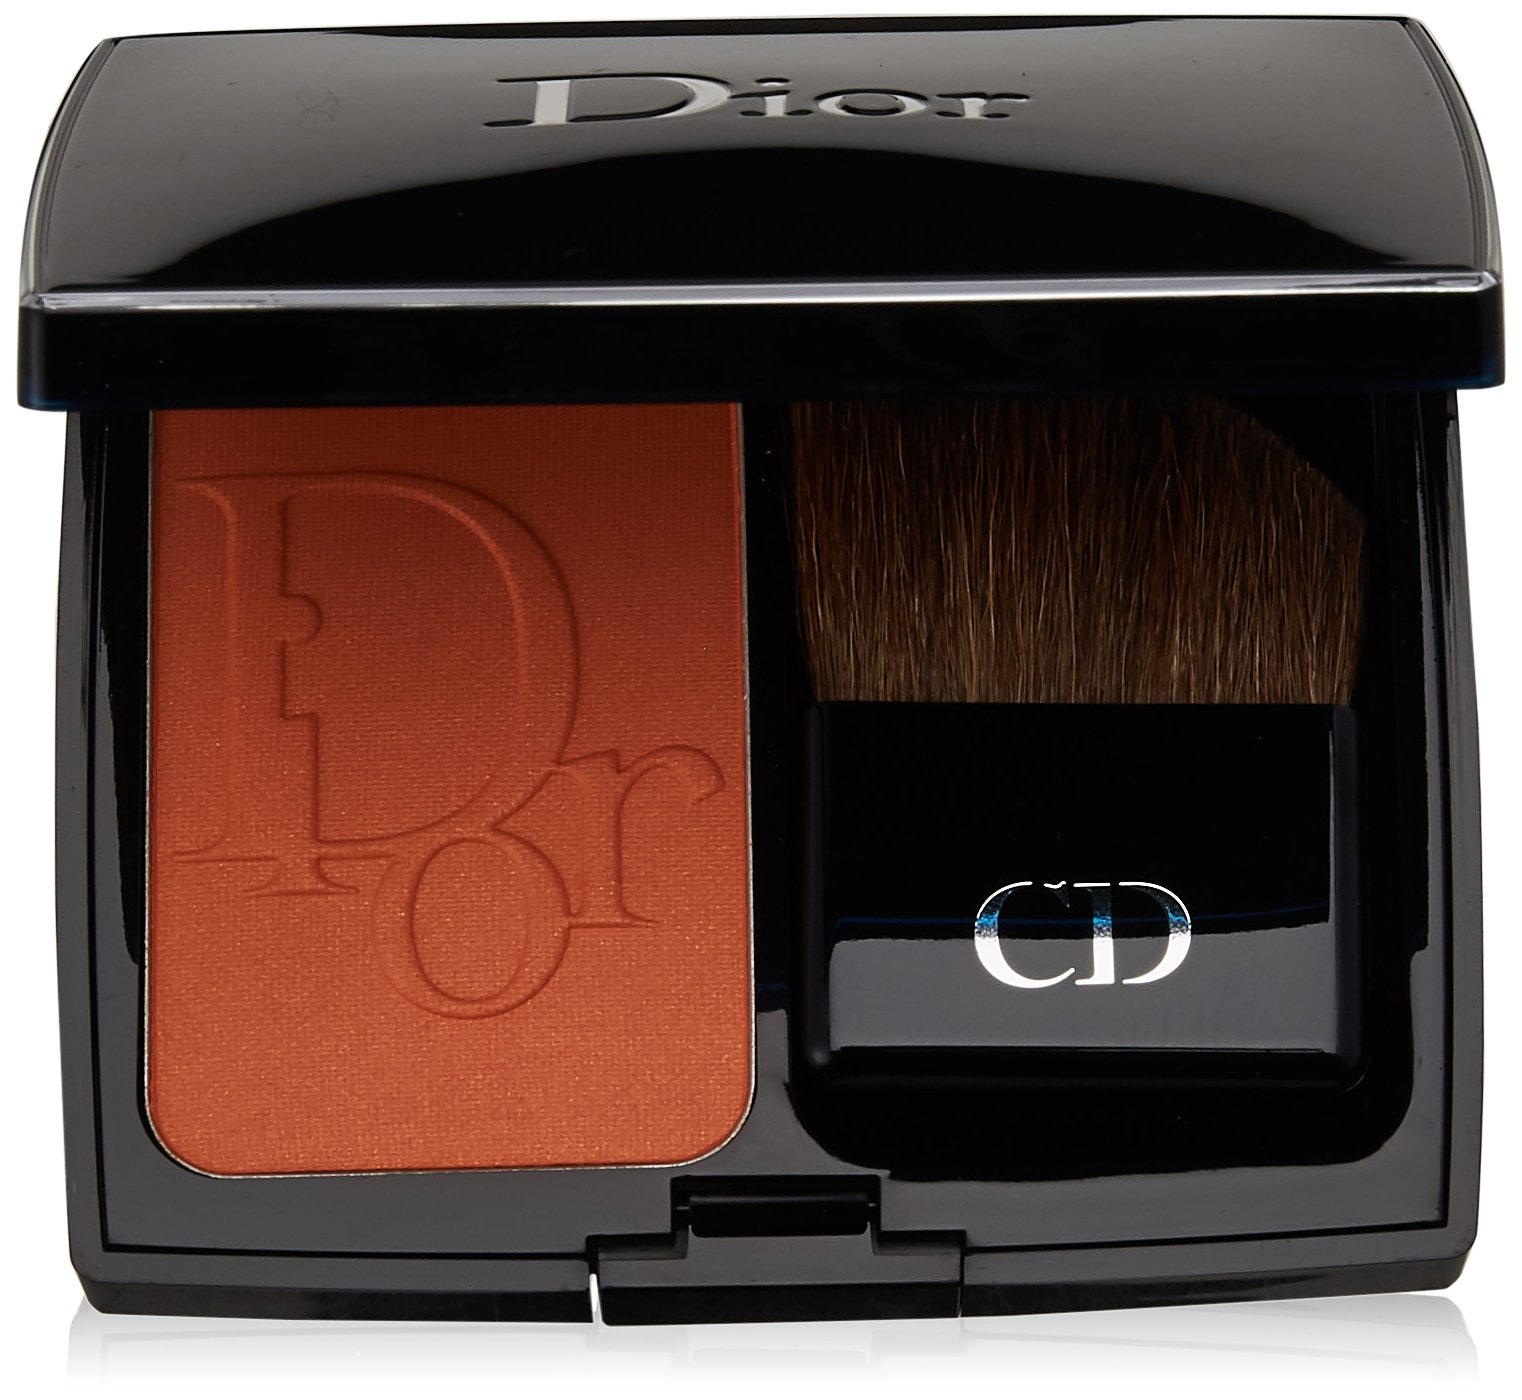 Christian Dior Vibrant Color Powder Blush for Women, No. 581 Dazzling Sun, 0.24 Ounce